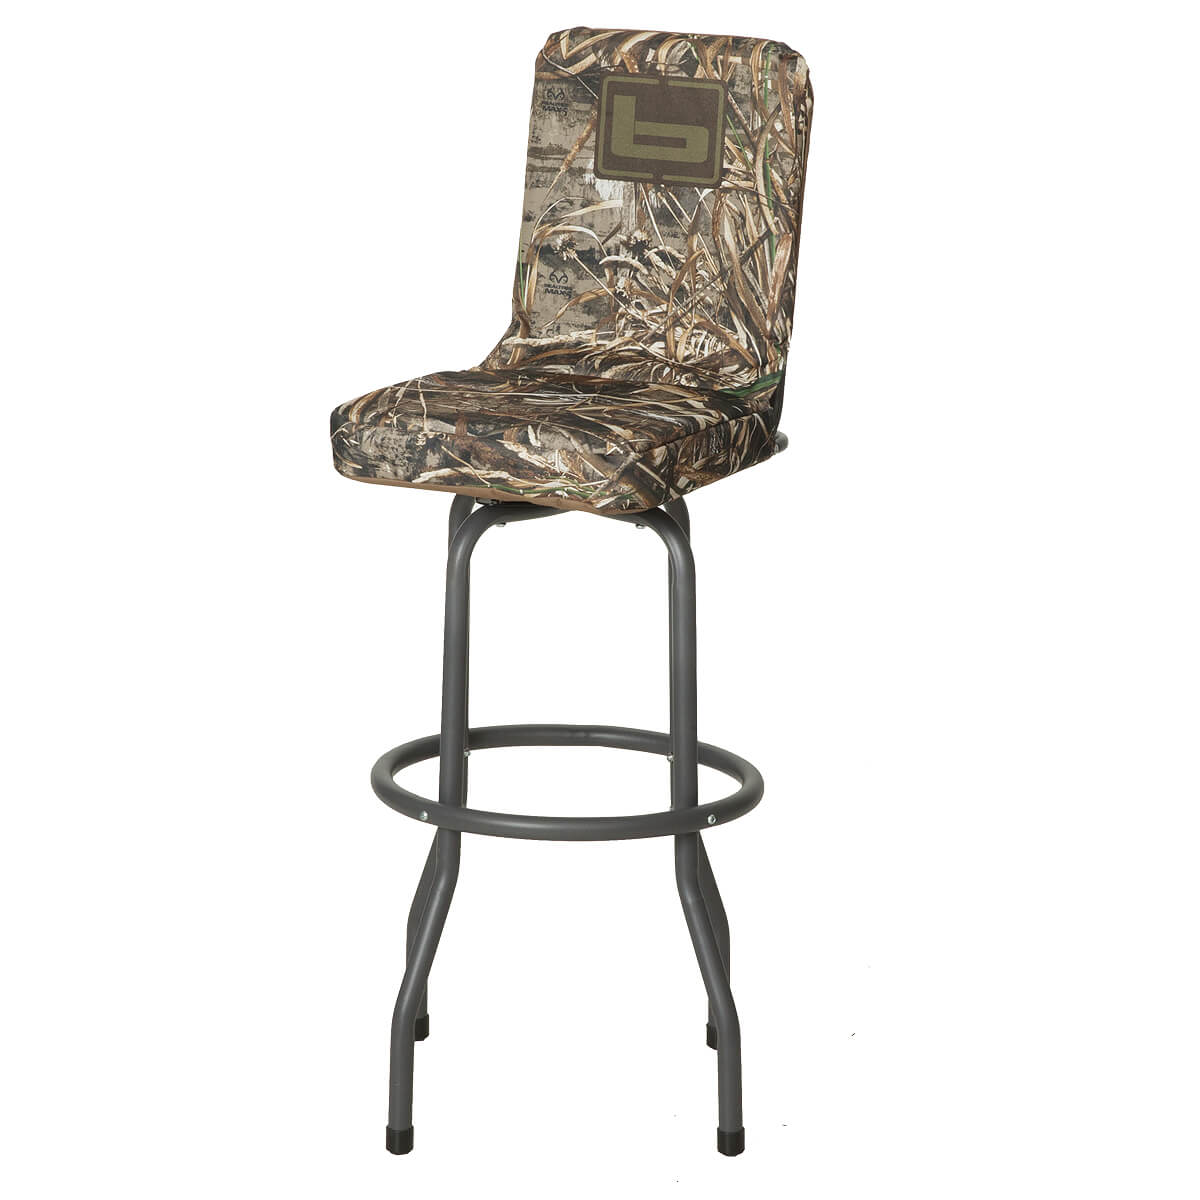 duck blind chair professional gaming chairs hunting stools for the field marsh banded hi top